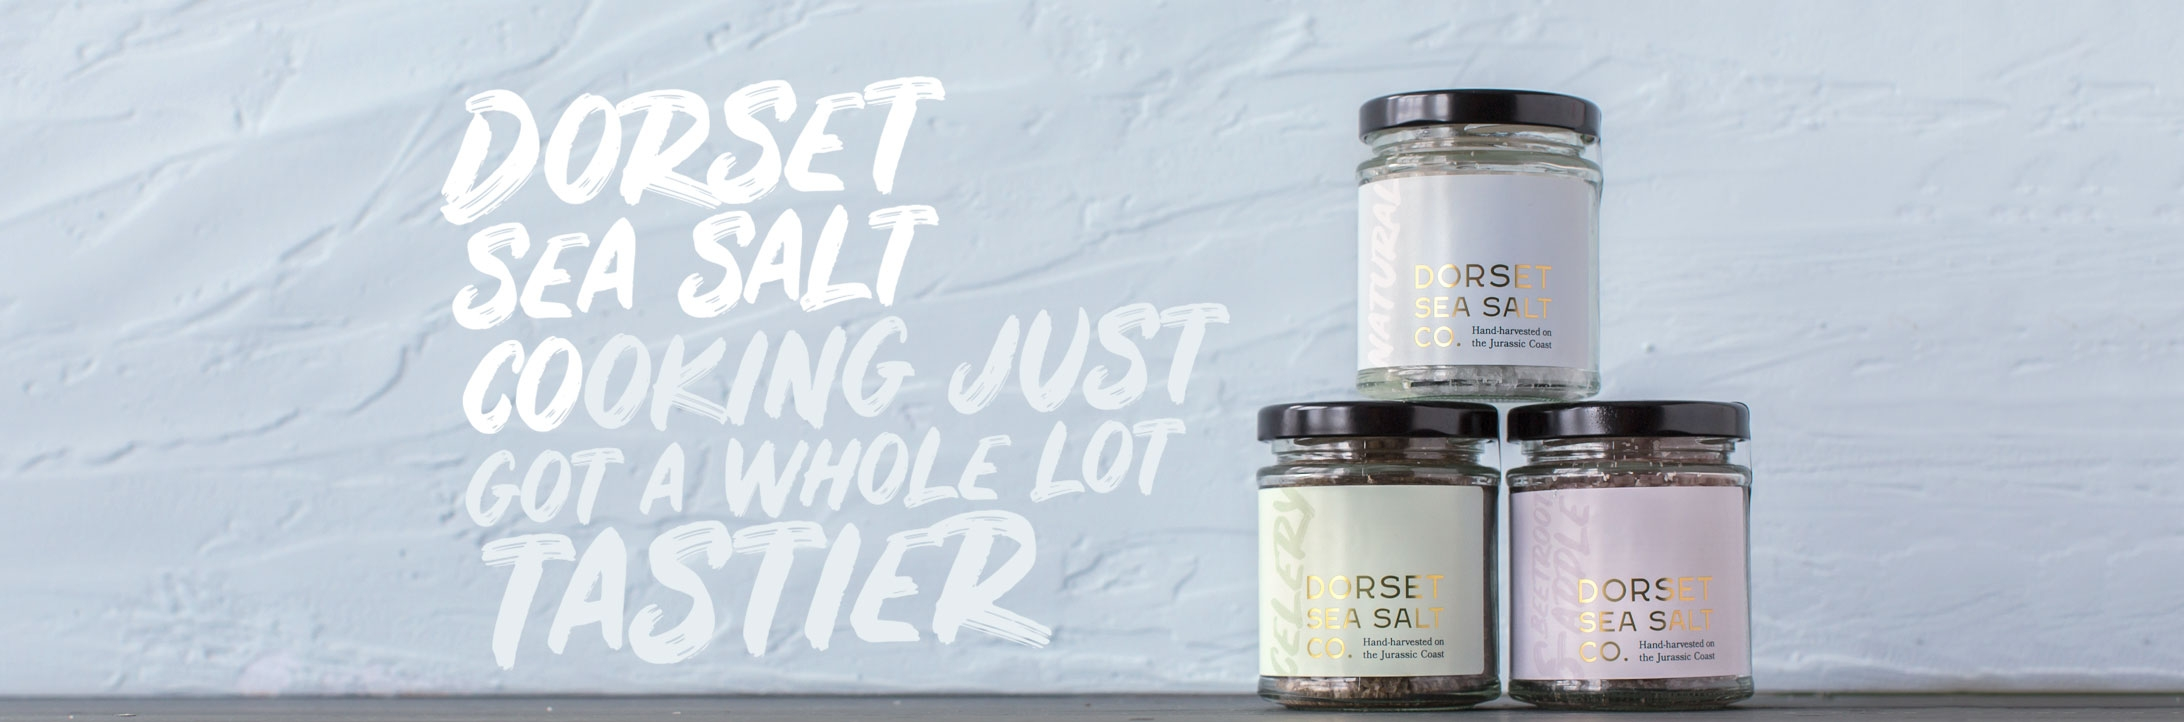 Dorset Sea salt Co. (@dorsetseasalt) Cover Image